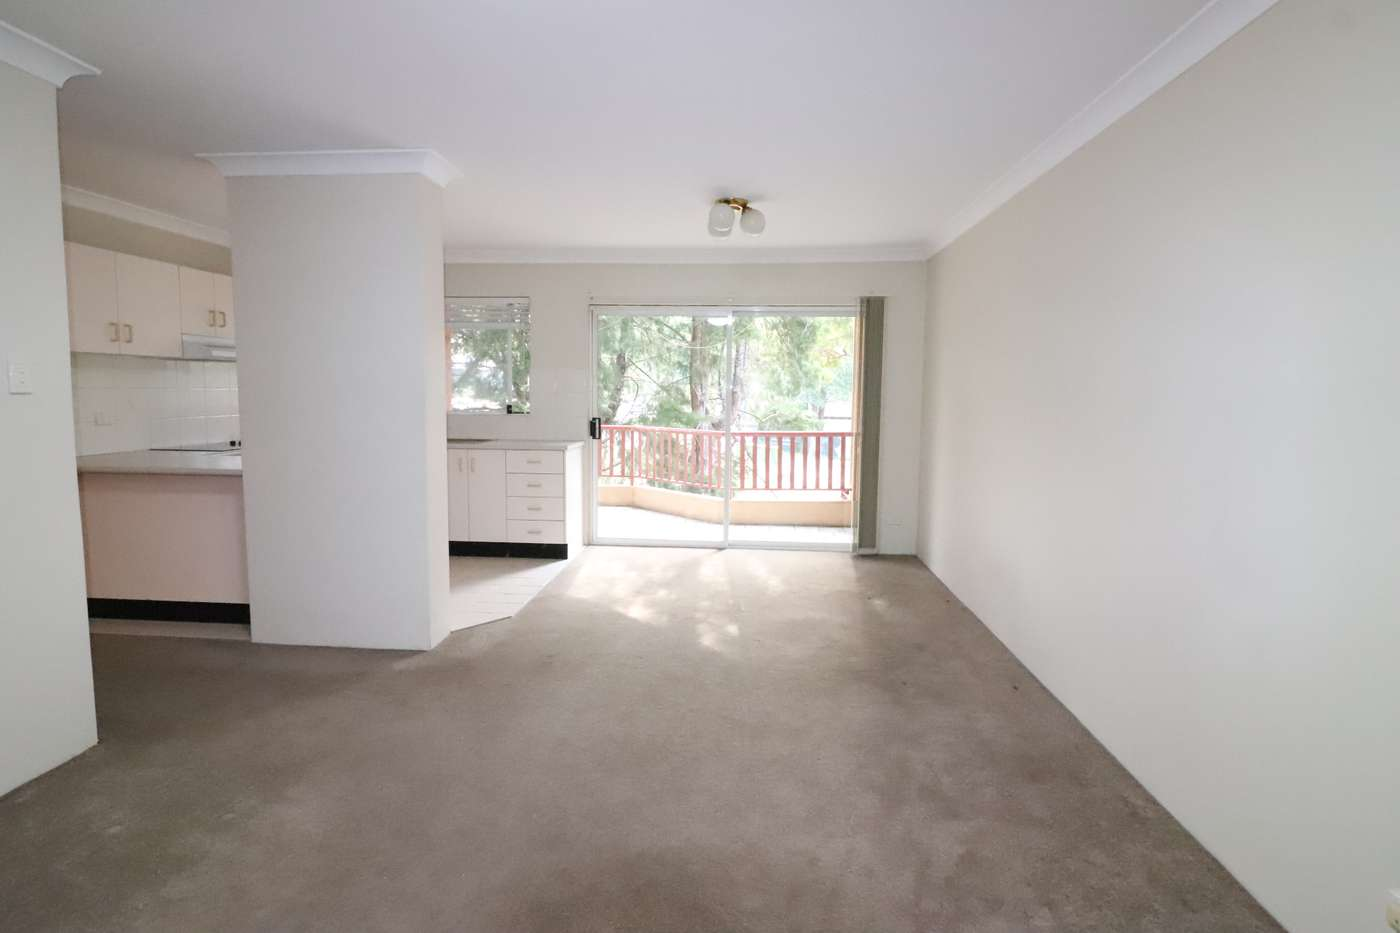 Main view of Homely unit listing, 8/60 Glencoe St, Sutherland, NSW 2232